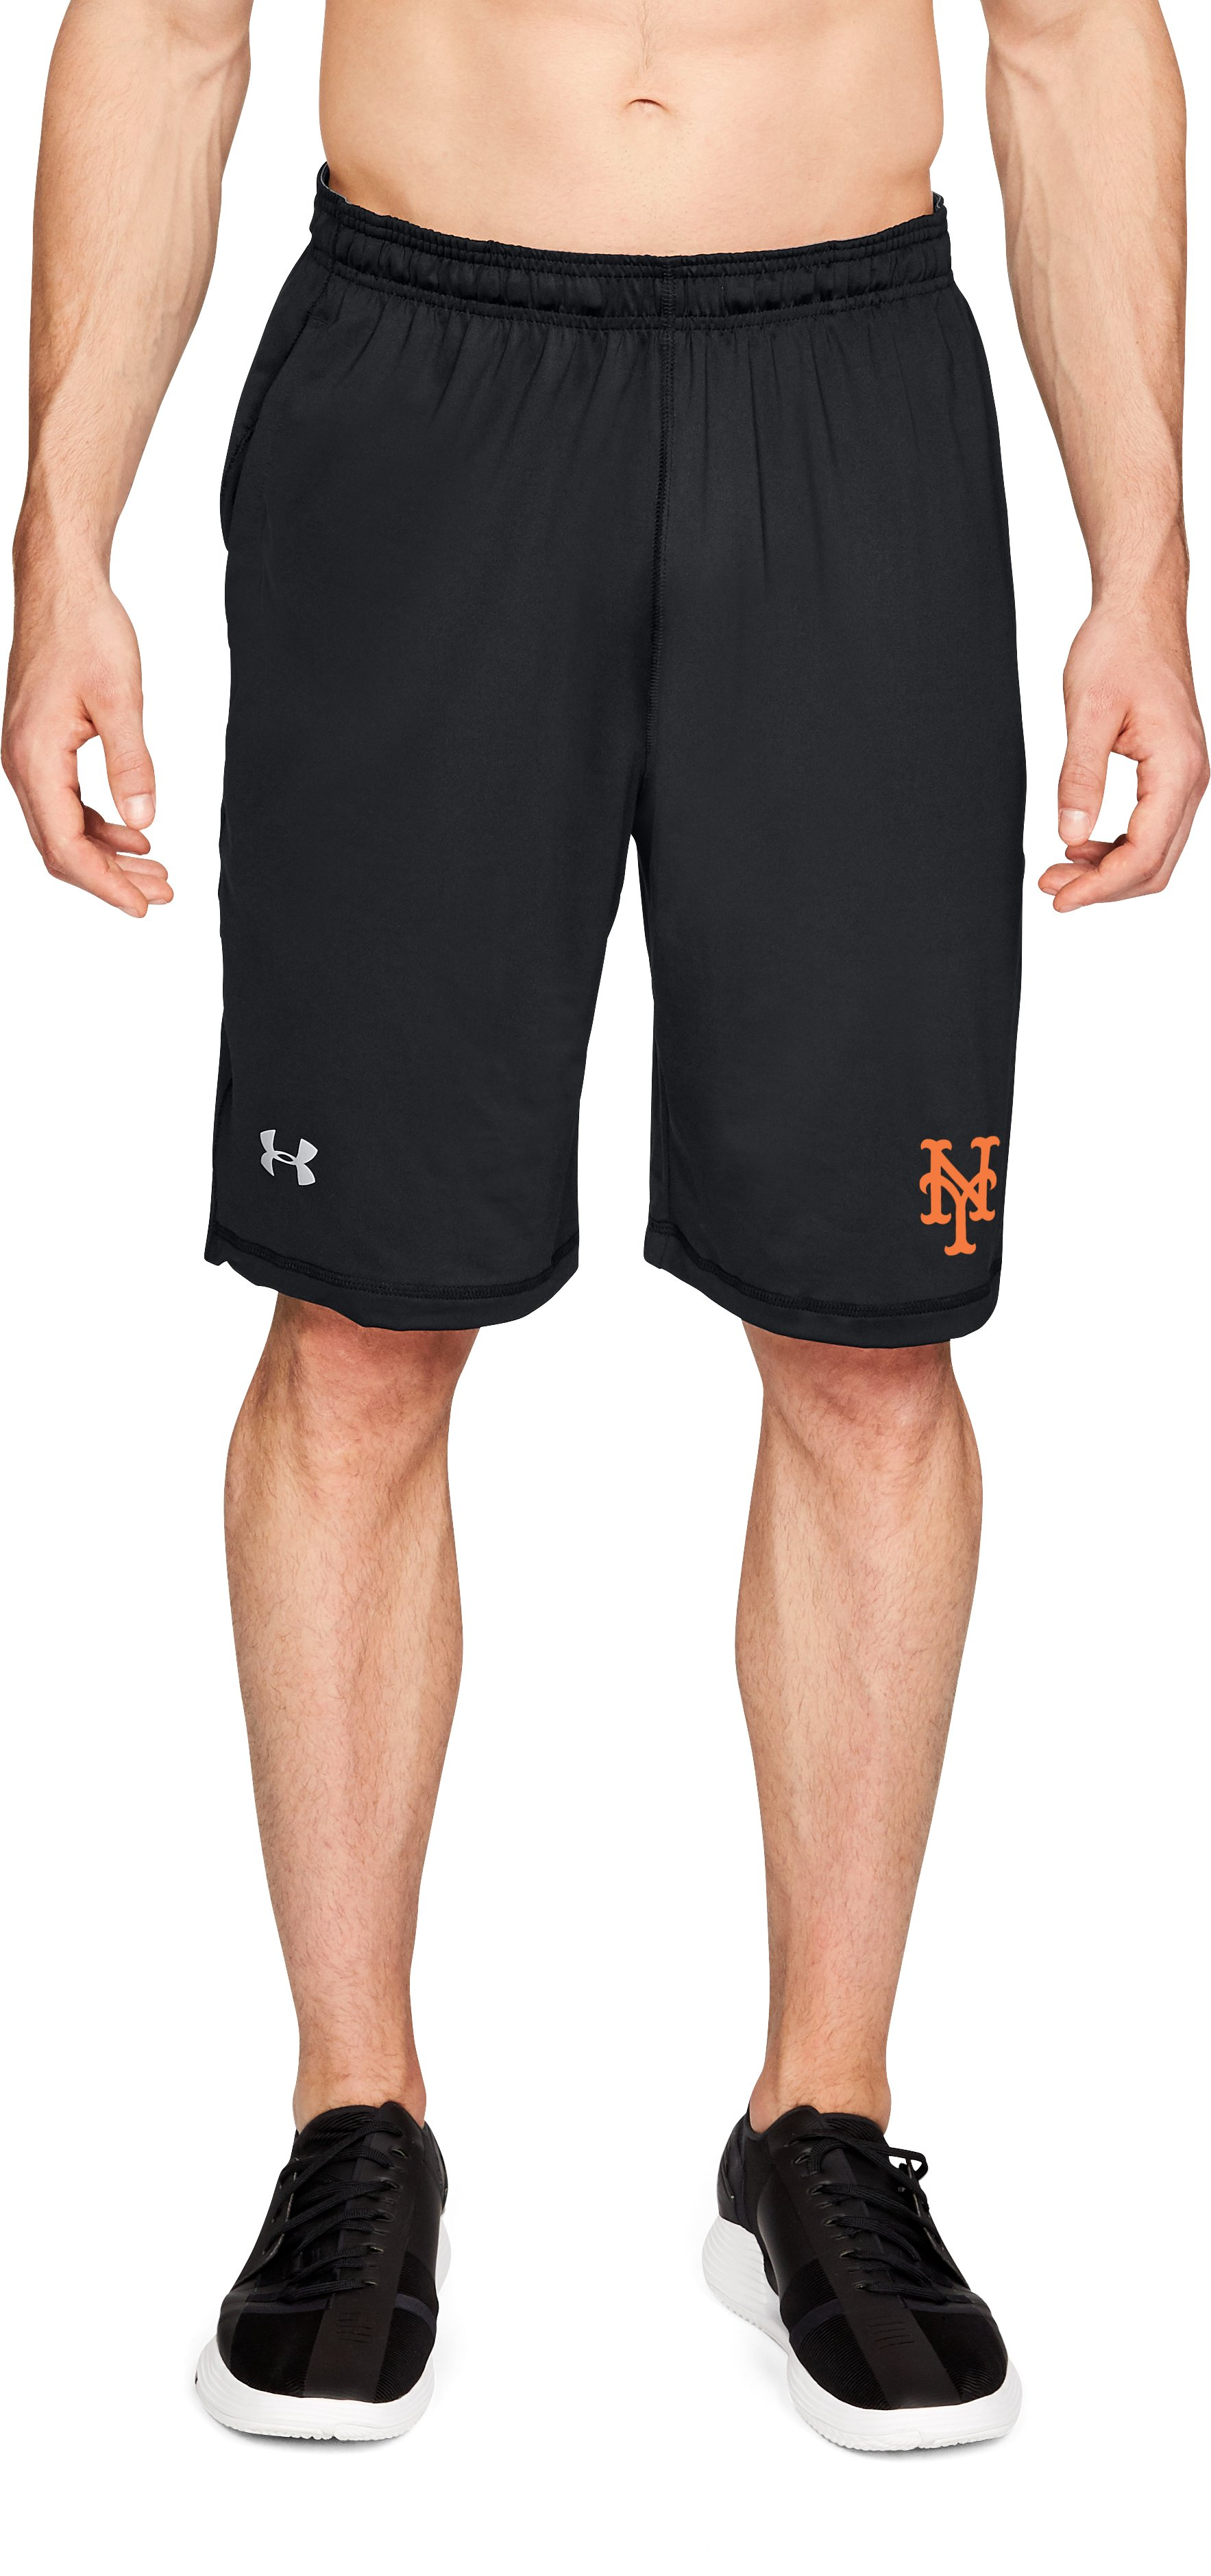 Men's MLB UA Raid Shorts, MLB_NYM_Black